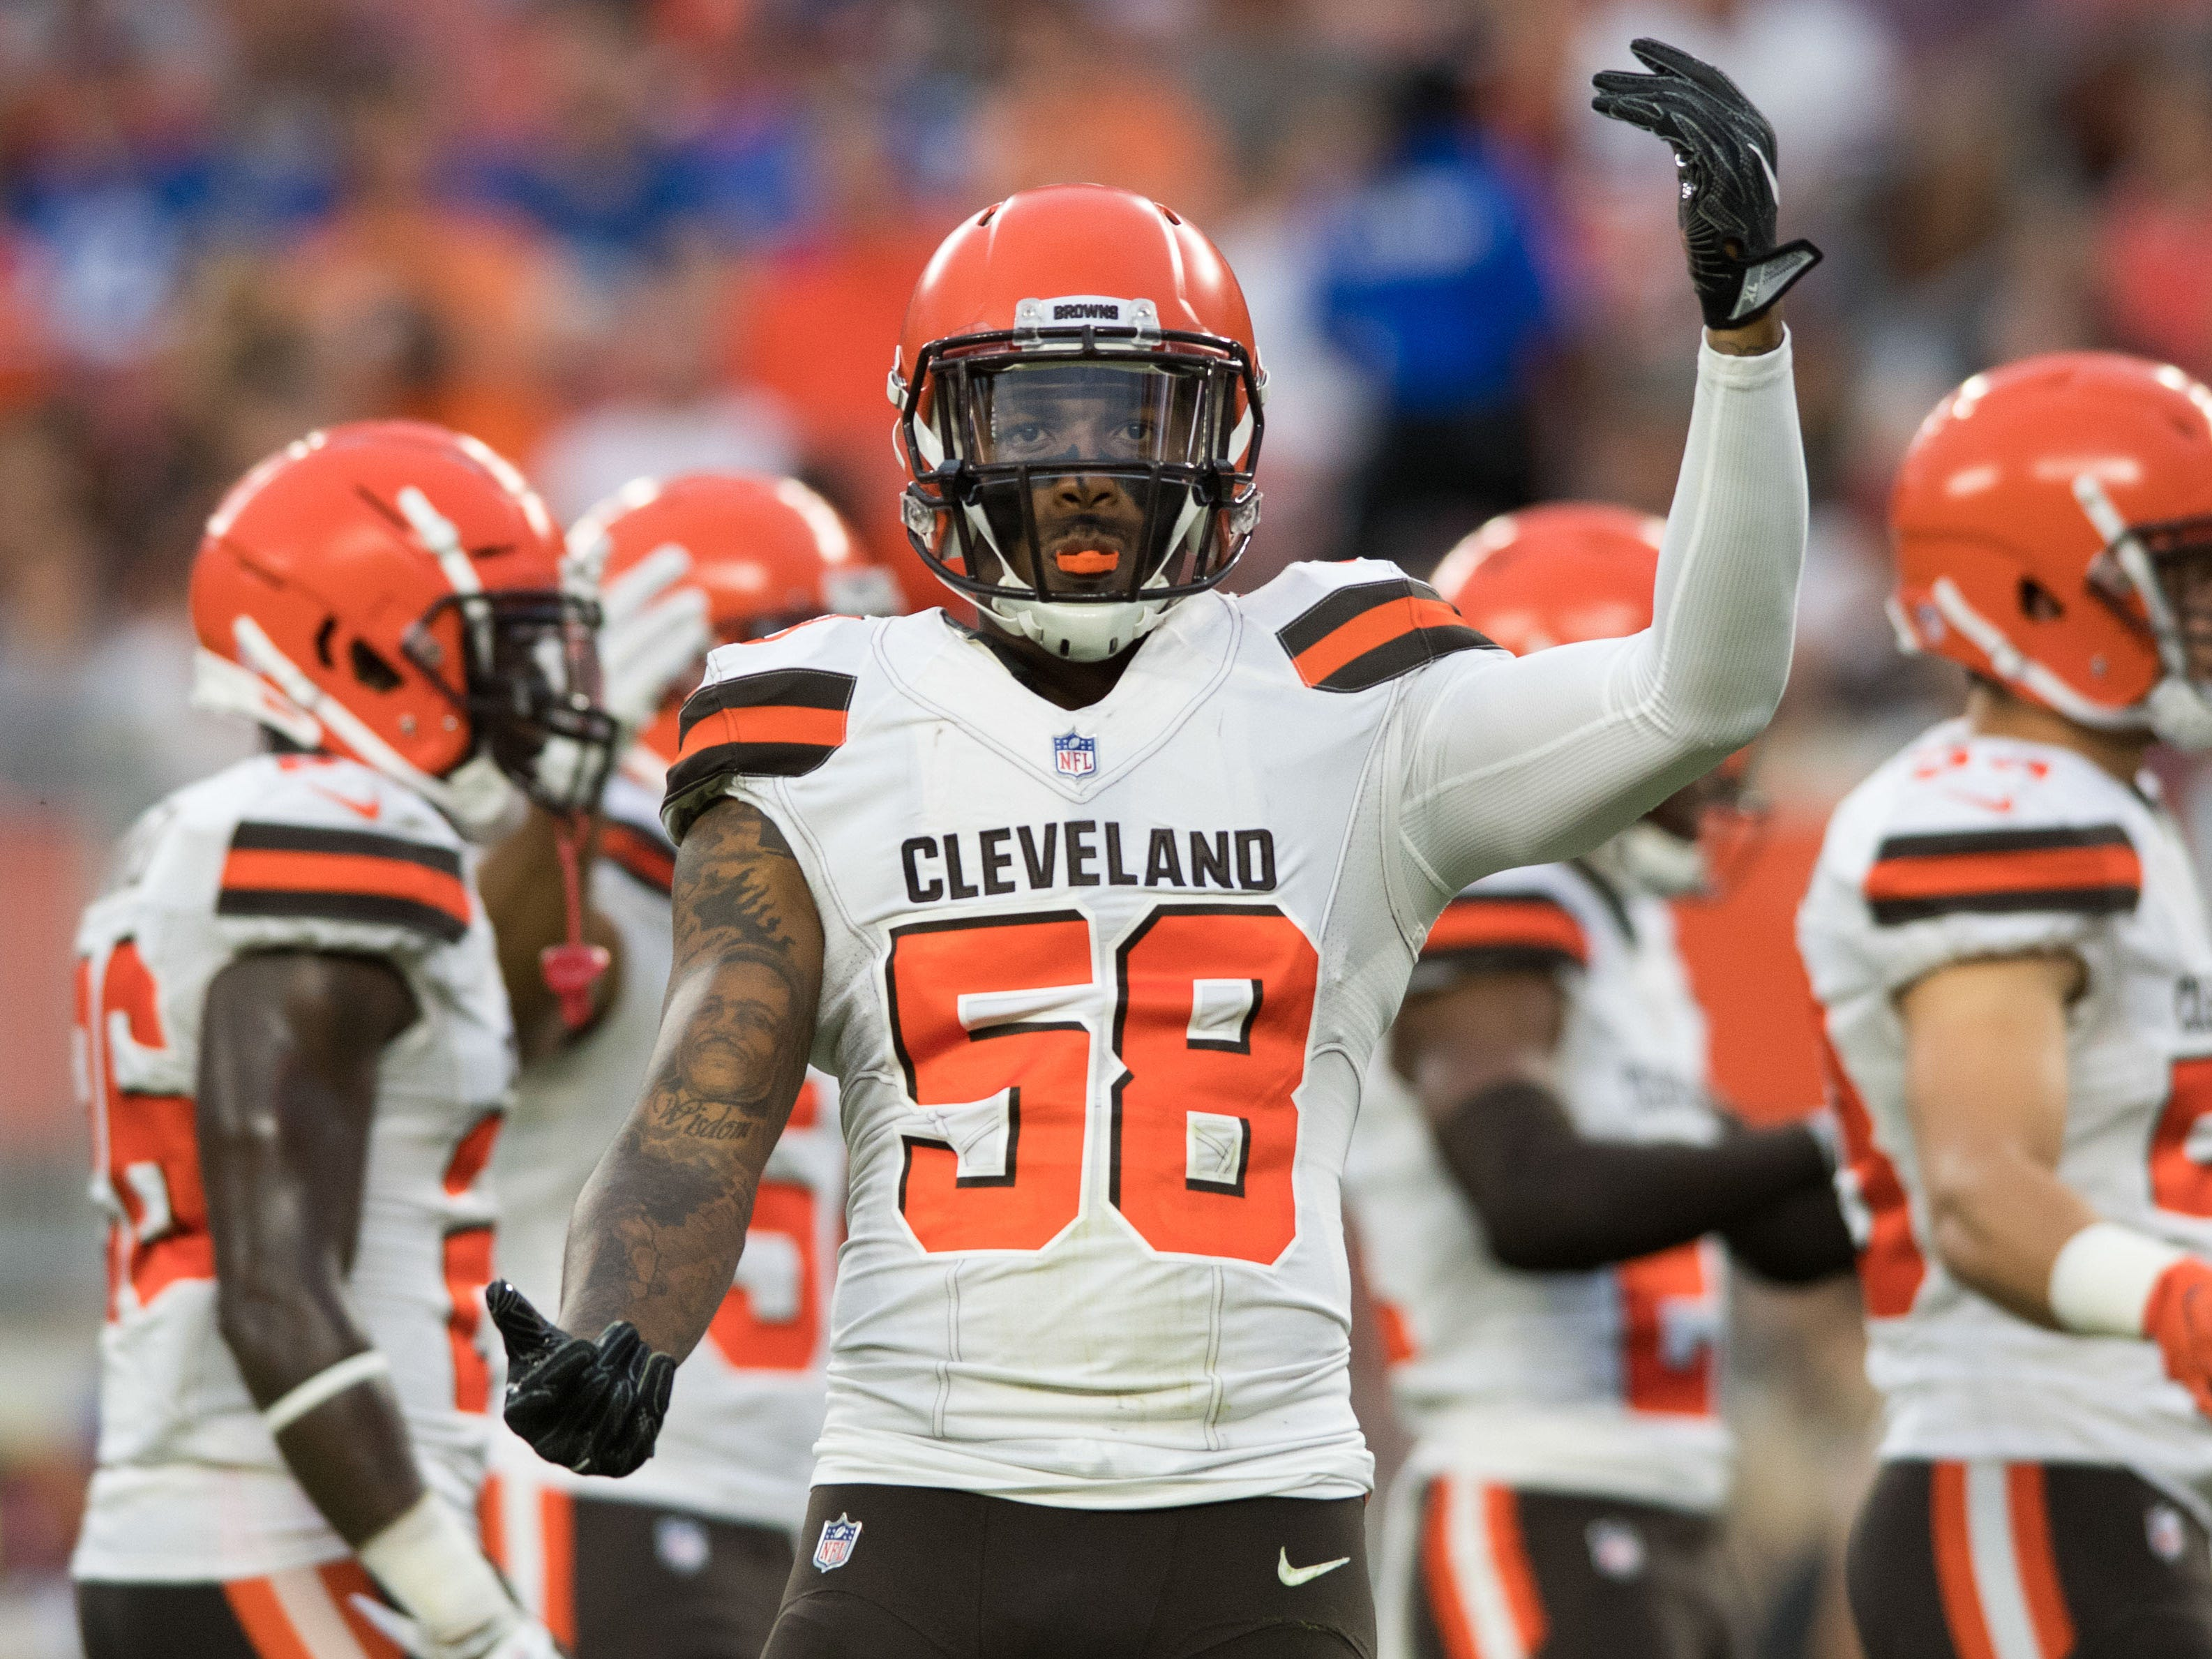 Christian Kirksey, LB, Cleveland Browns (hamstring, out for season)